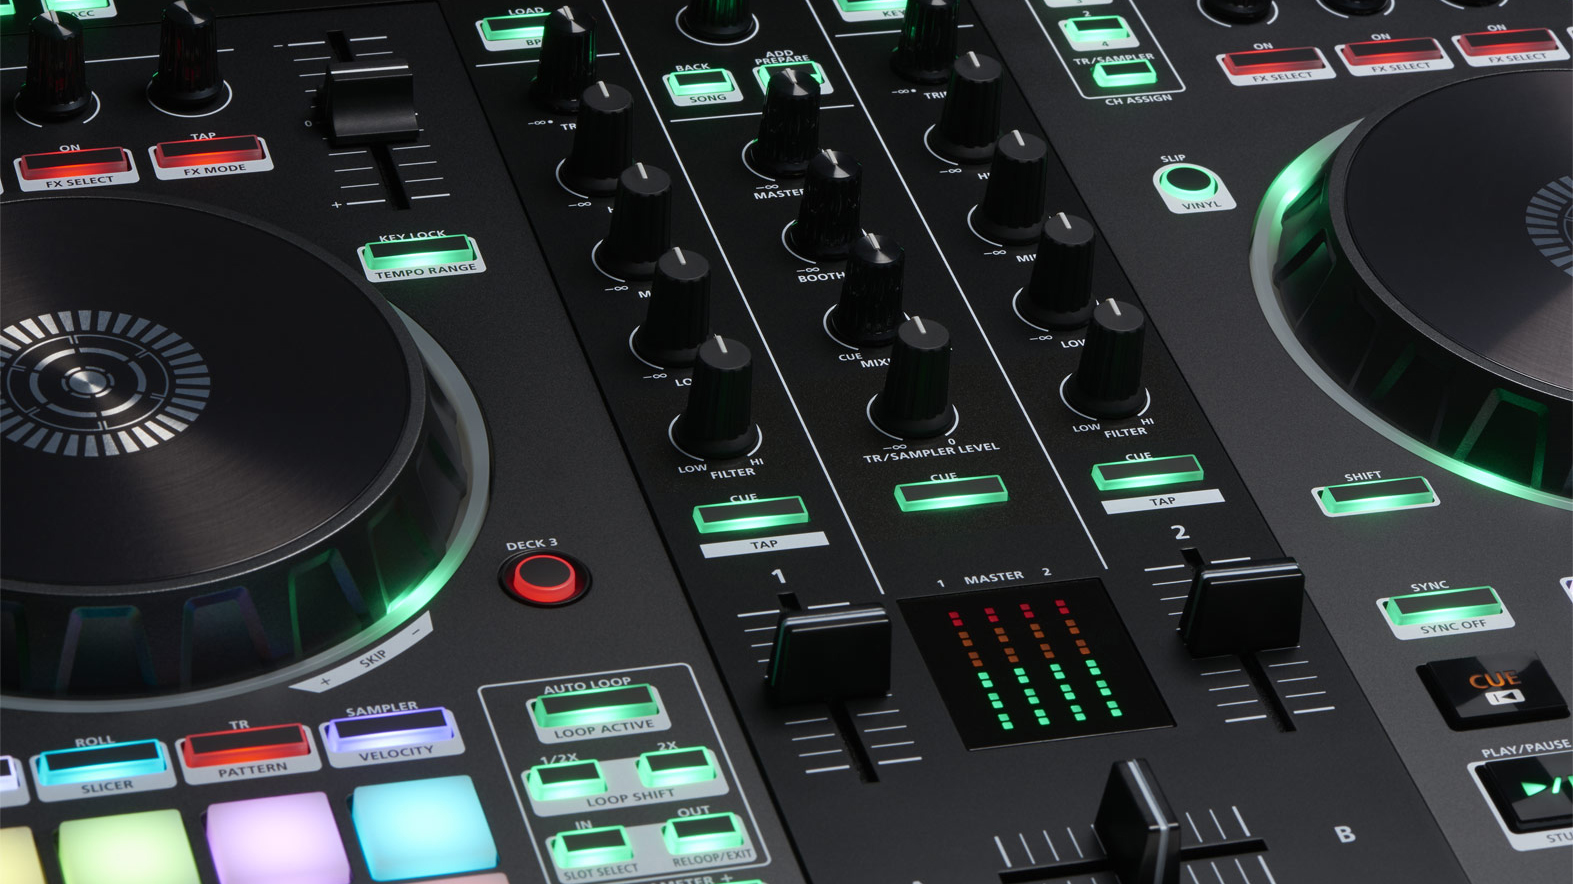 The Best Dj Controllers 2021 Top Mixing Devices From Traktor Serato Rekordbox And More Musicradar